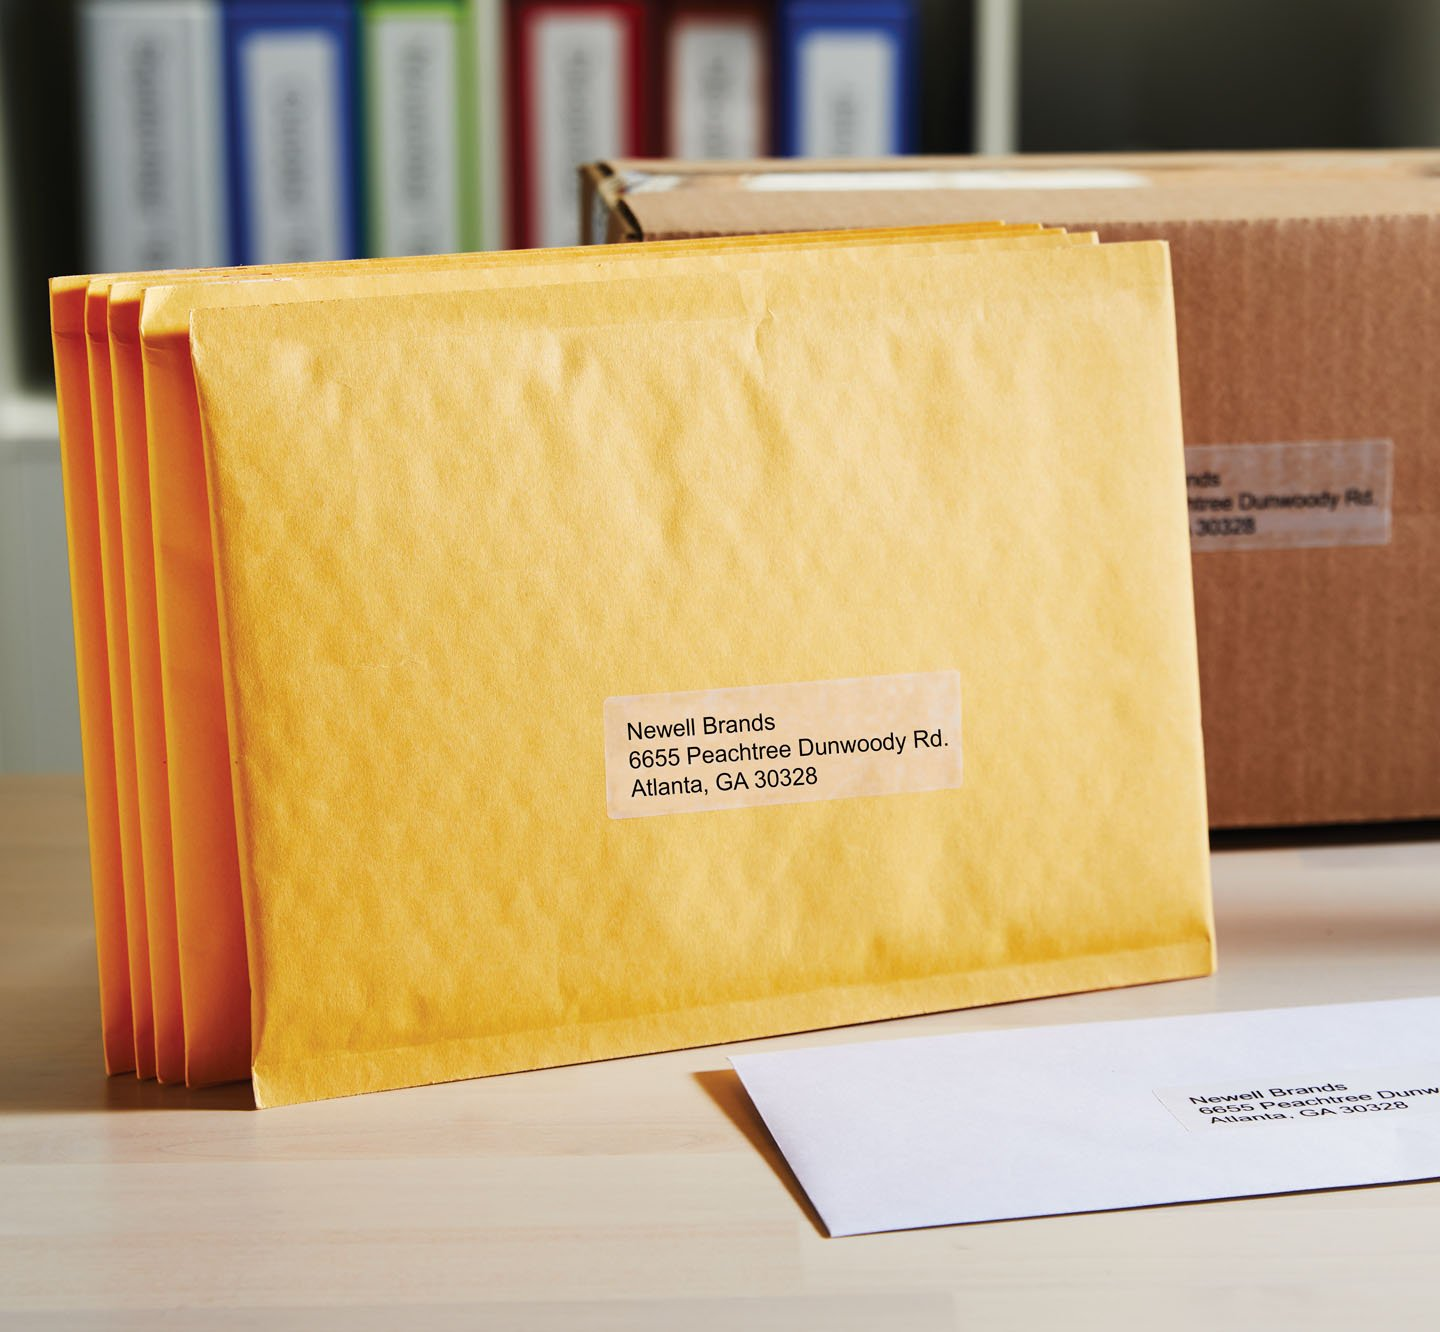 Packages with address labels.